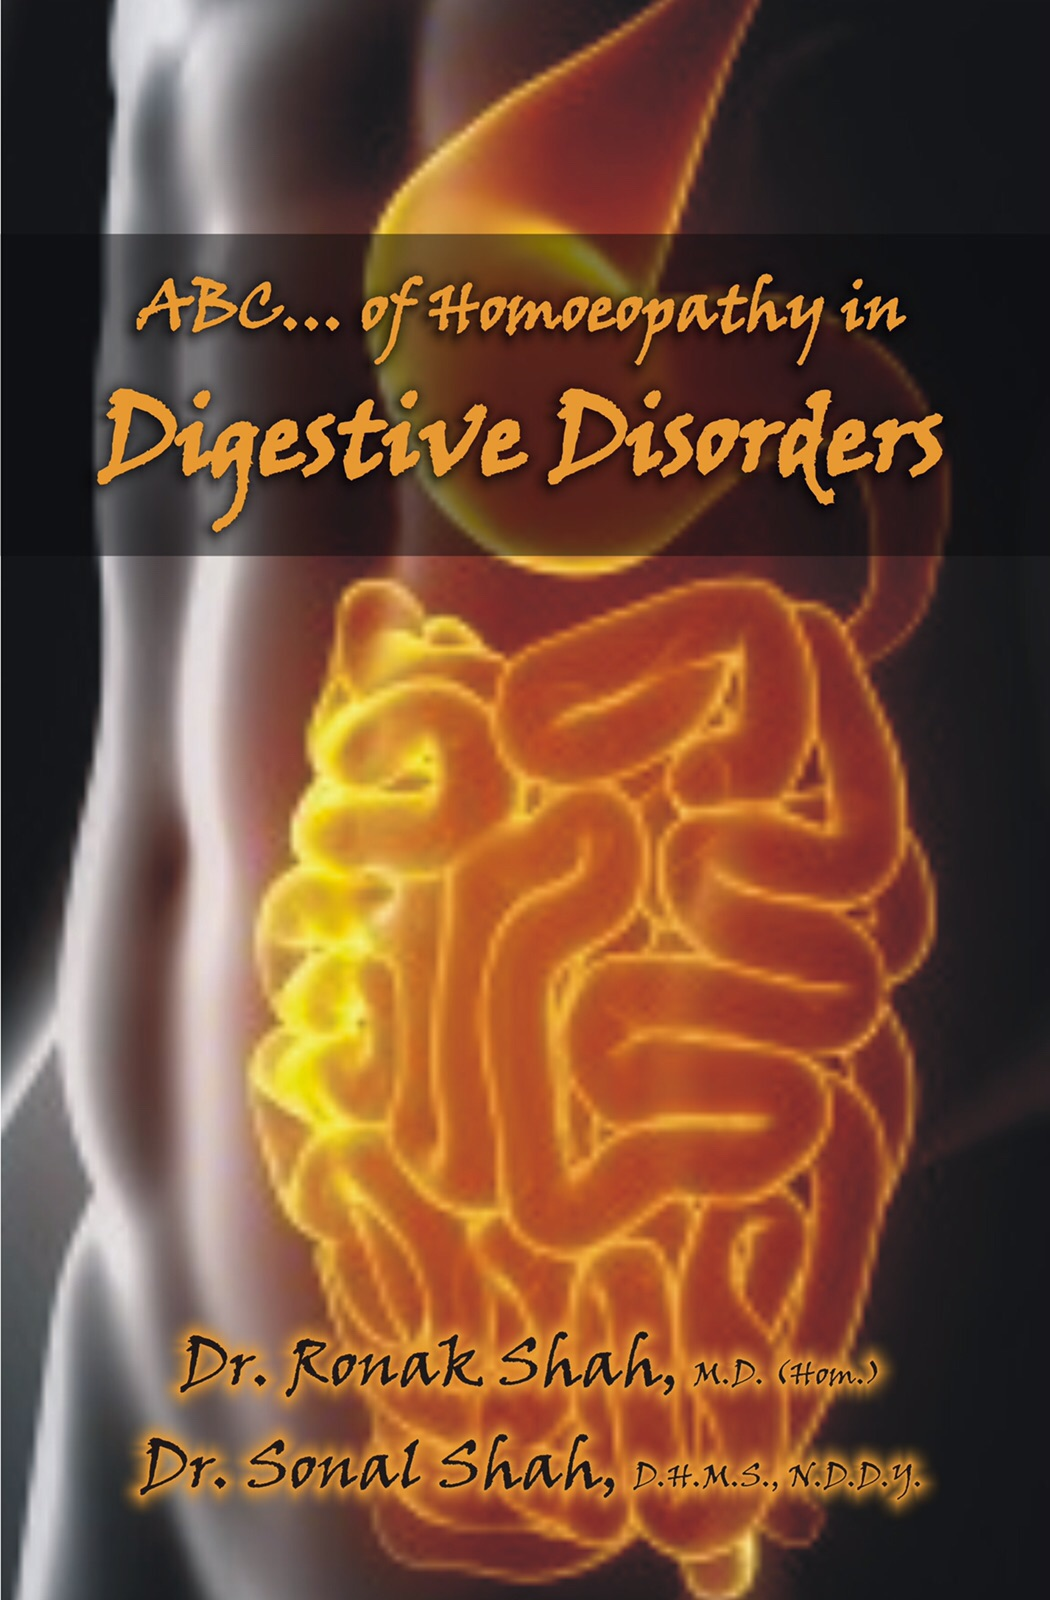 Abc.... Of Homoeopathy in Digestive Disorders